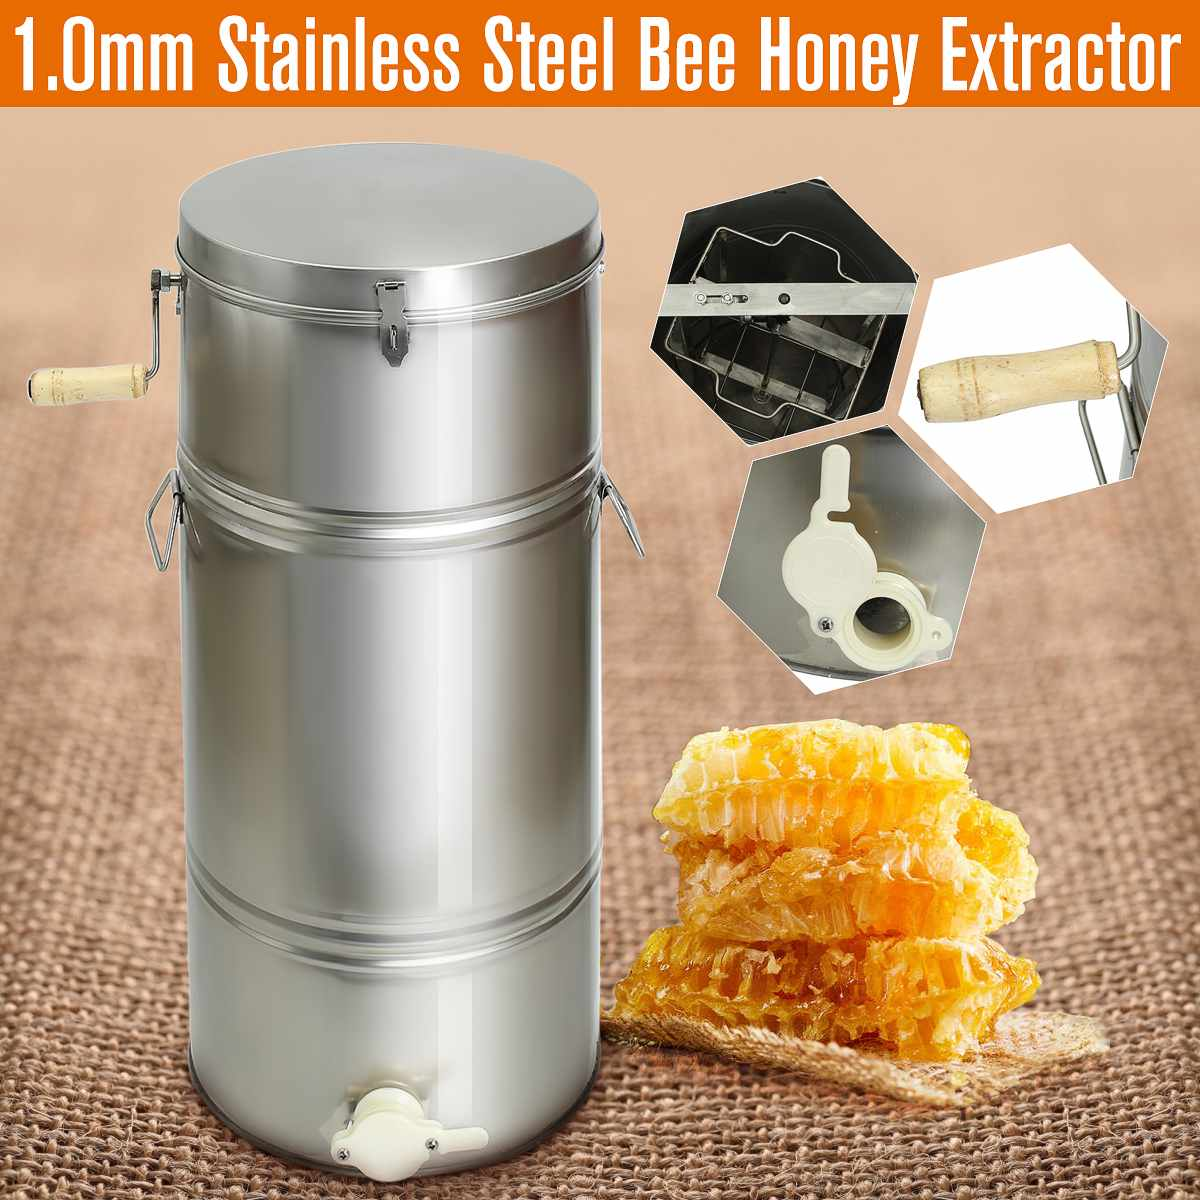 2 Frame Honey Extractor Stainless Steel Beekeeping Machine Tool Box Honey Extractor Supplies Beekeeping Equipment